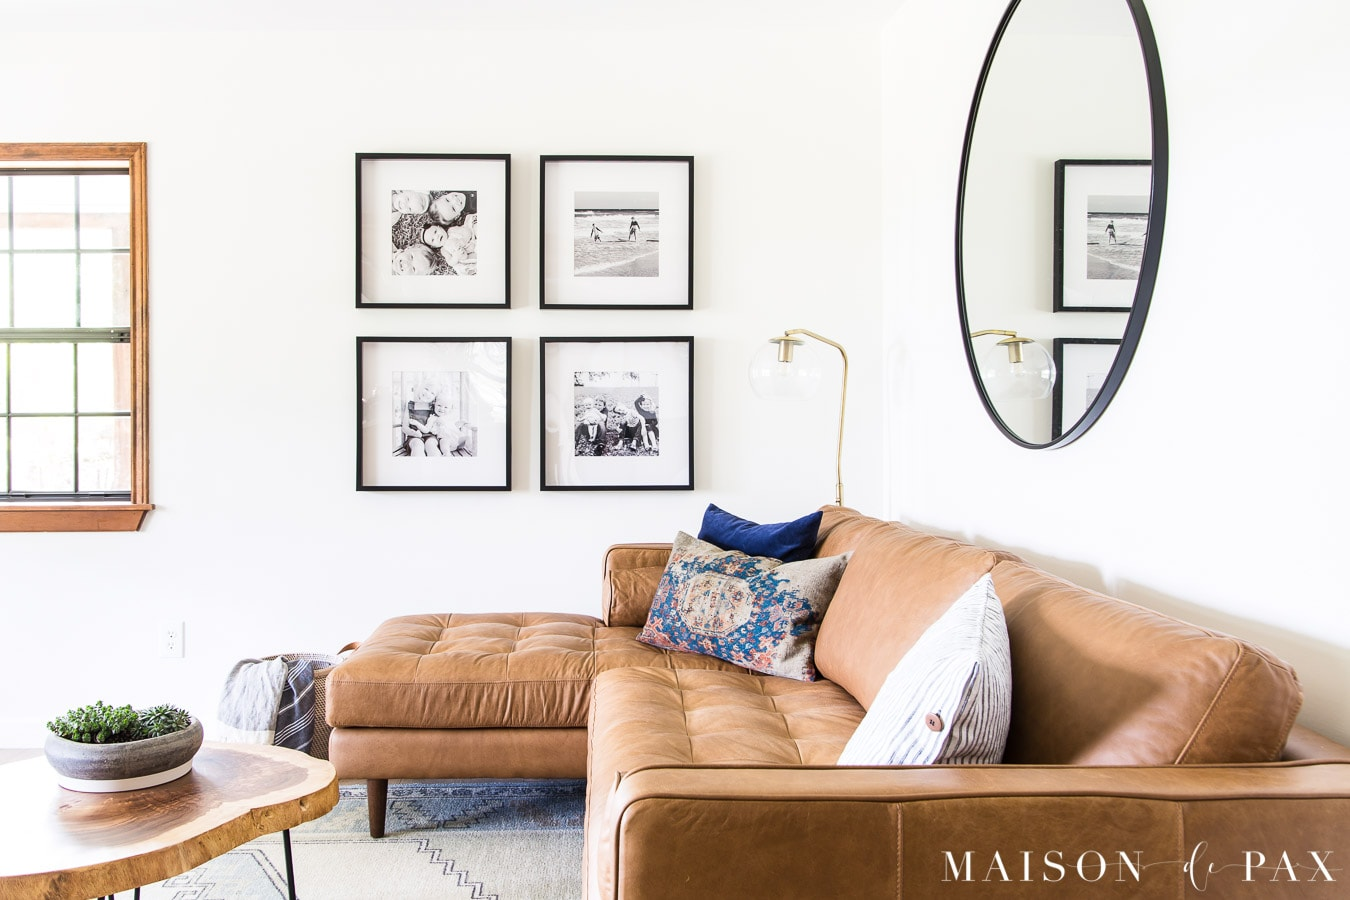 tan leather sectional with mid century modern feel | Maison de Pax